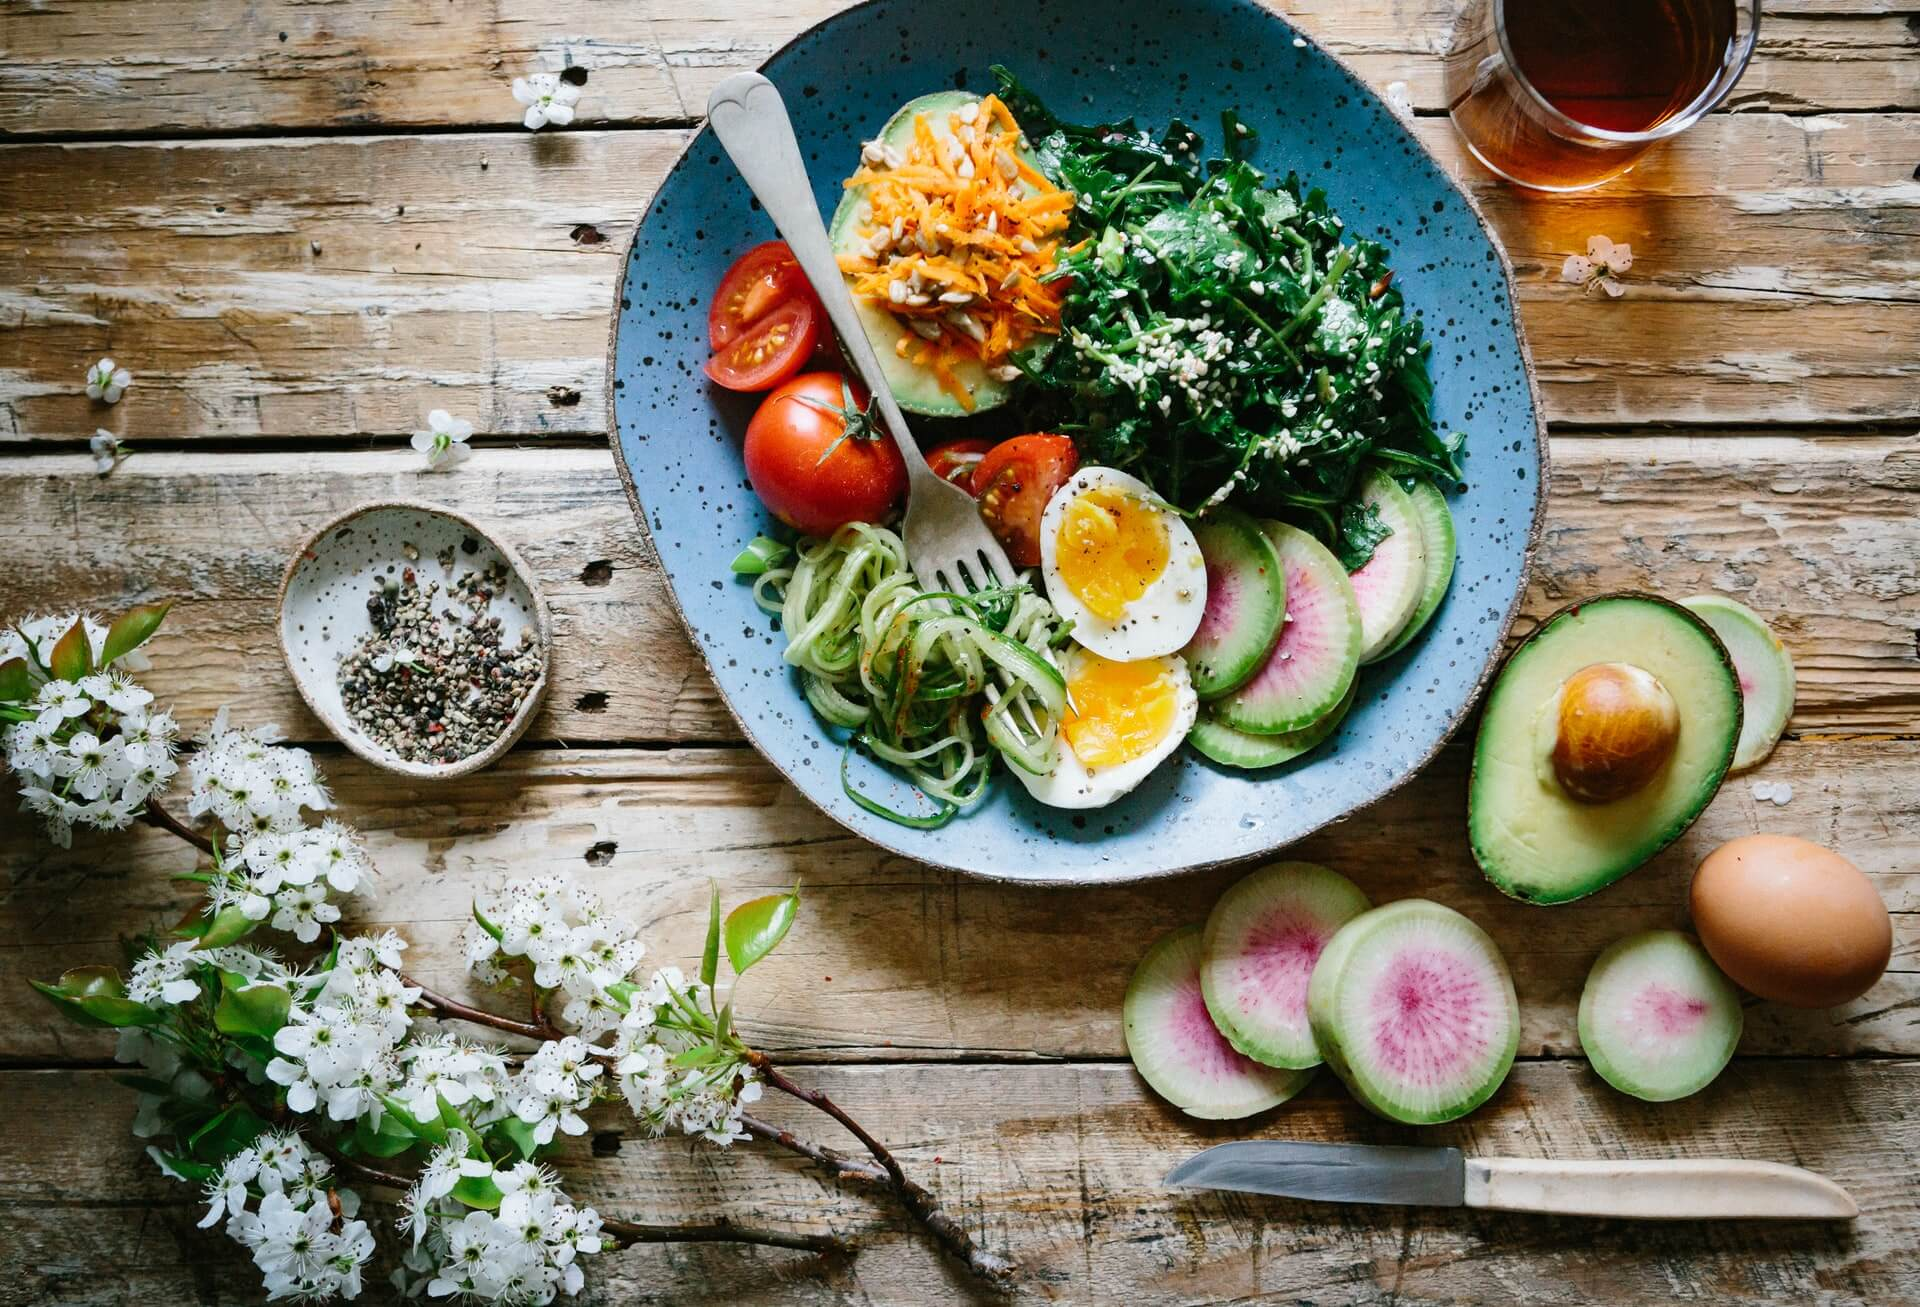 nutrition can help you achieve regular cycles